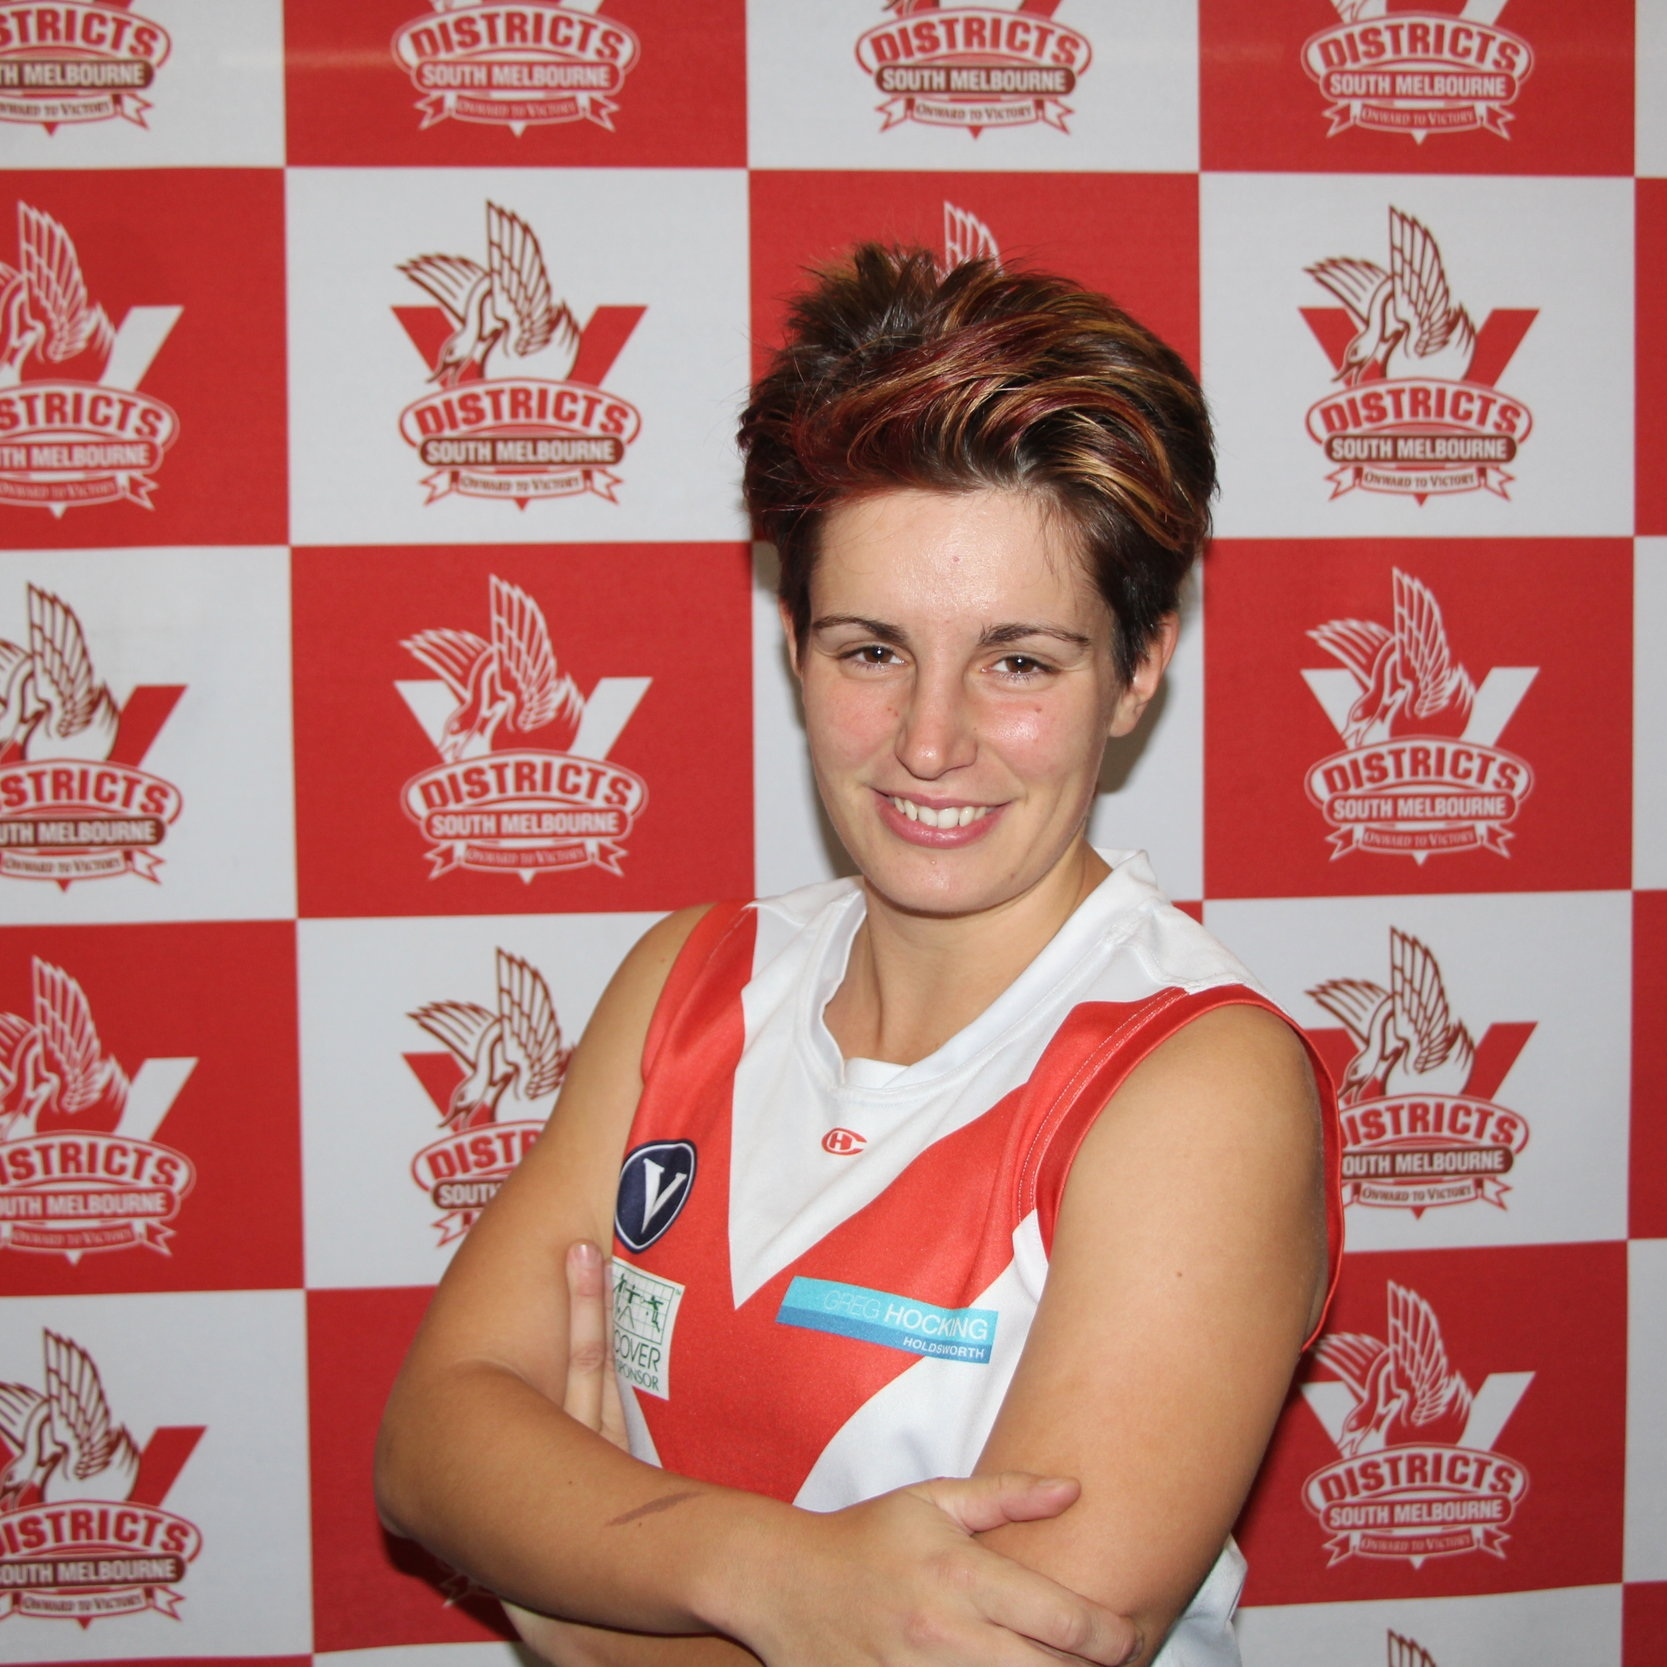 Paula A  This season we welcome our Spanish Senorita Paula to the team. She comes to us from sunny Cairns where she began her footy career. Whilst curiosity may have killed the cat it luckily drove Paula to try out footy and fall in love before returning to Melbourne and the Bloods! She has been part of the successful senior's team of 2019 wearing the #80 jumper.